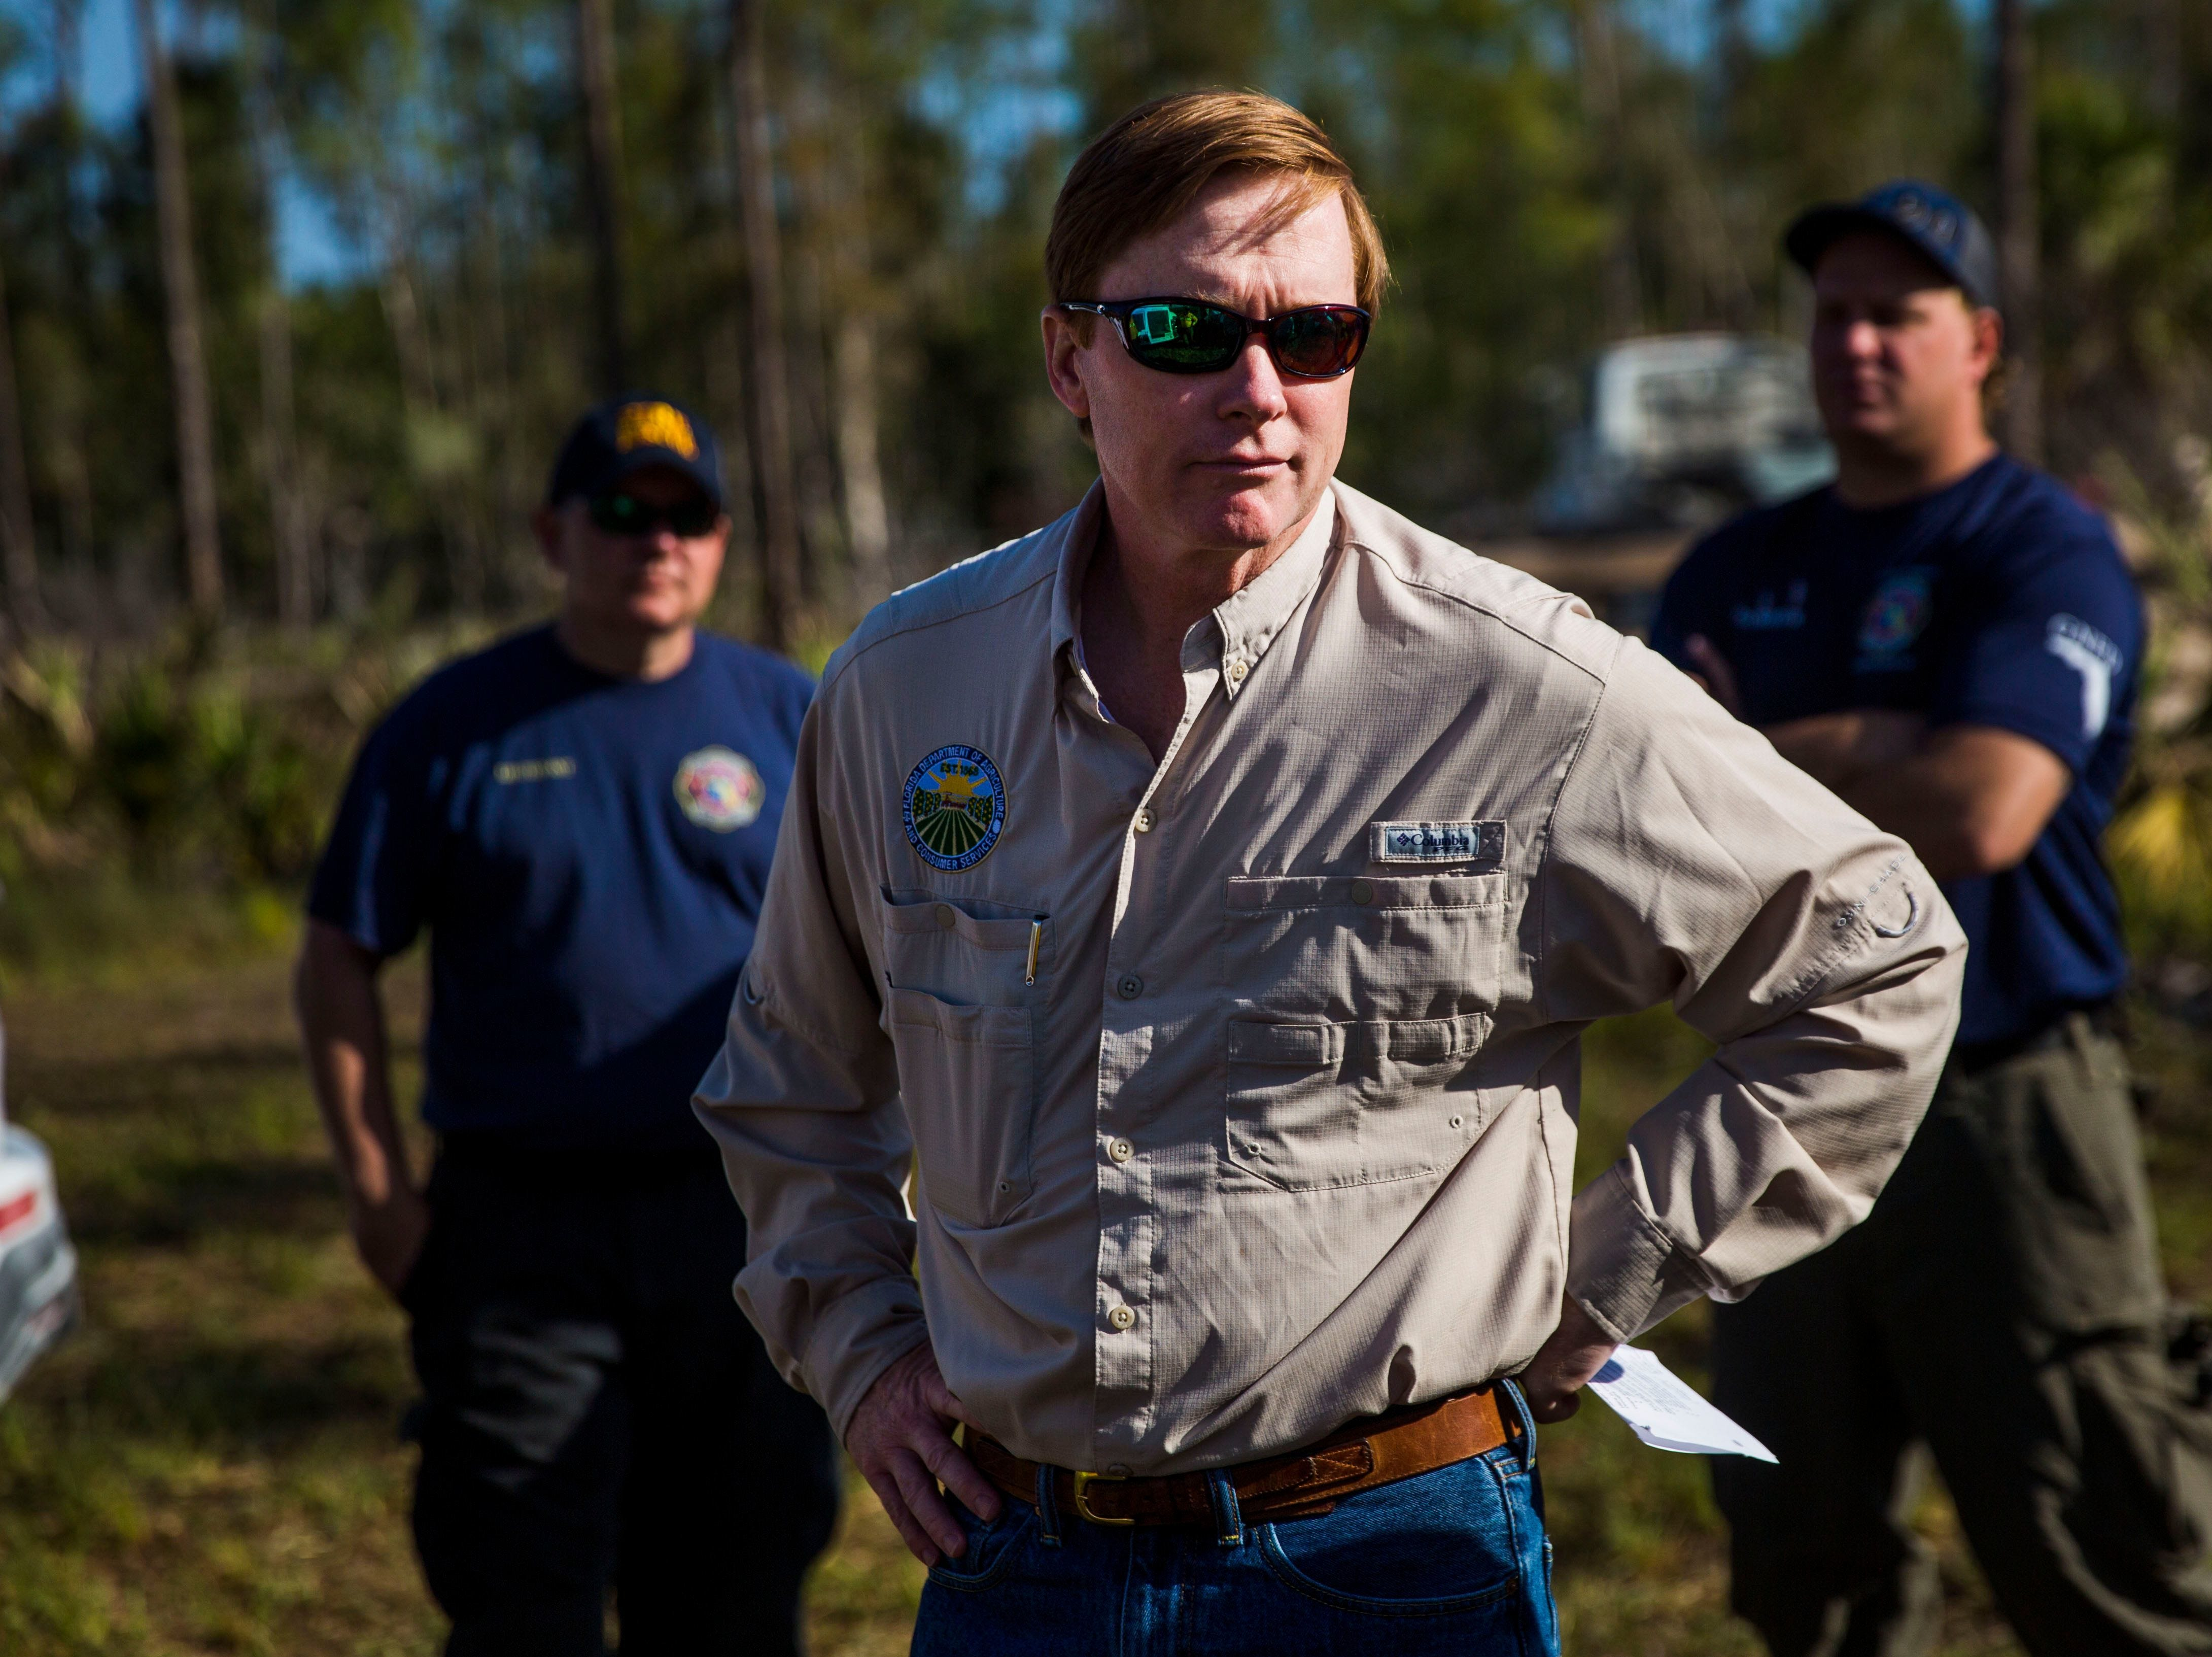 March 28, 2018 - Agriculture Commissioner Adam Putnam, seen here in Collier County. His agency stopped looking into an FBI database for more than a year as part of its concealed-weapon approval procedure.